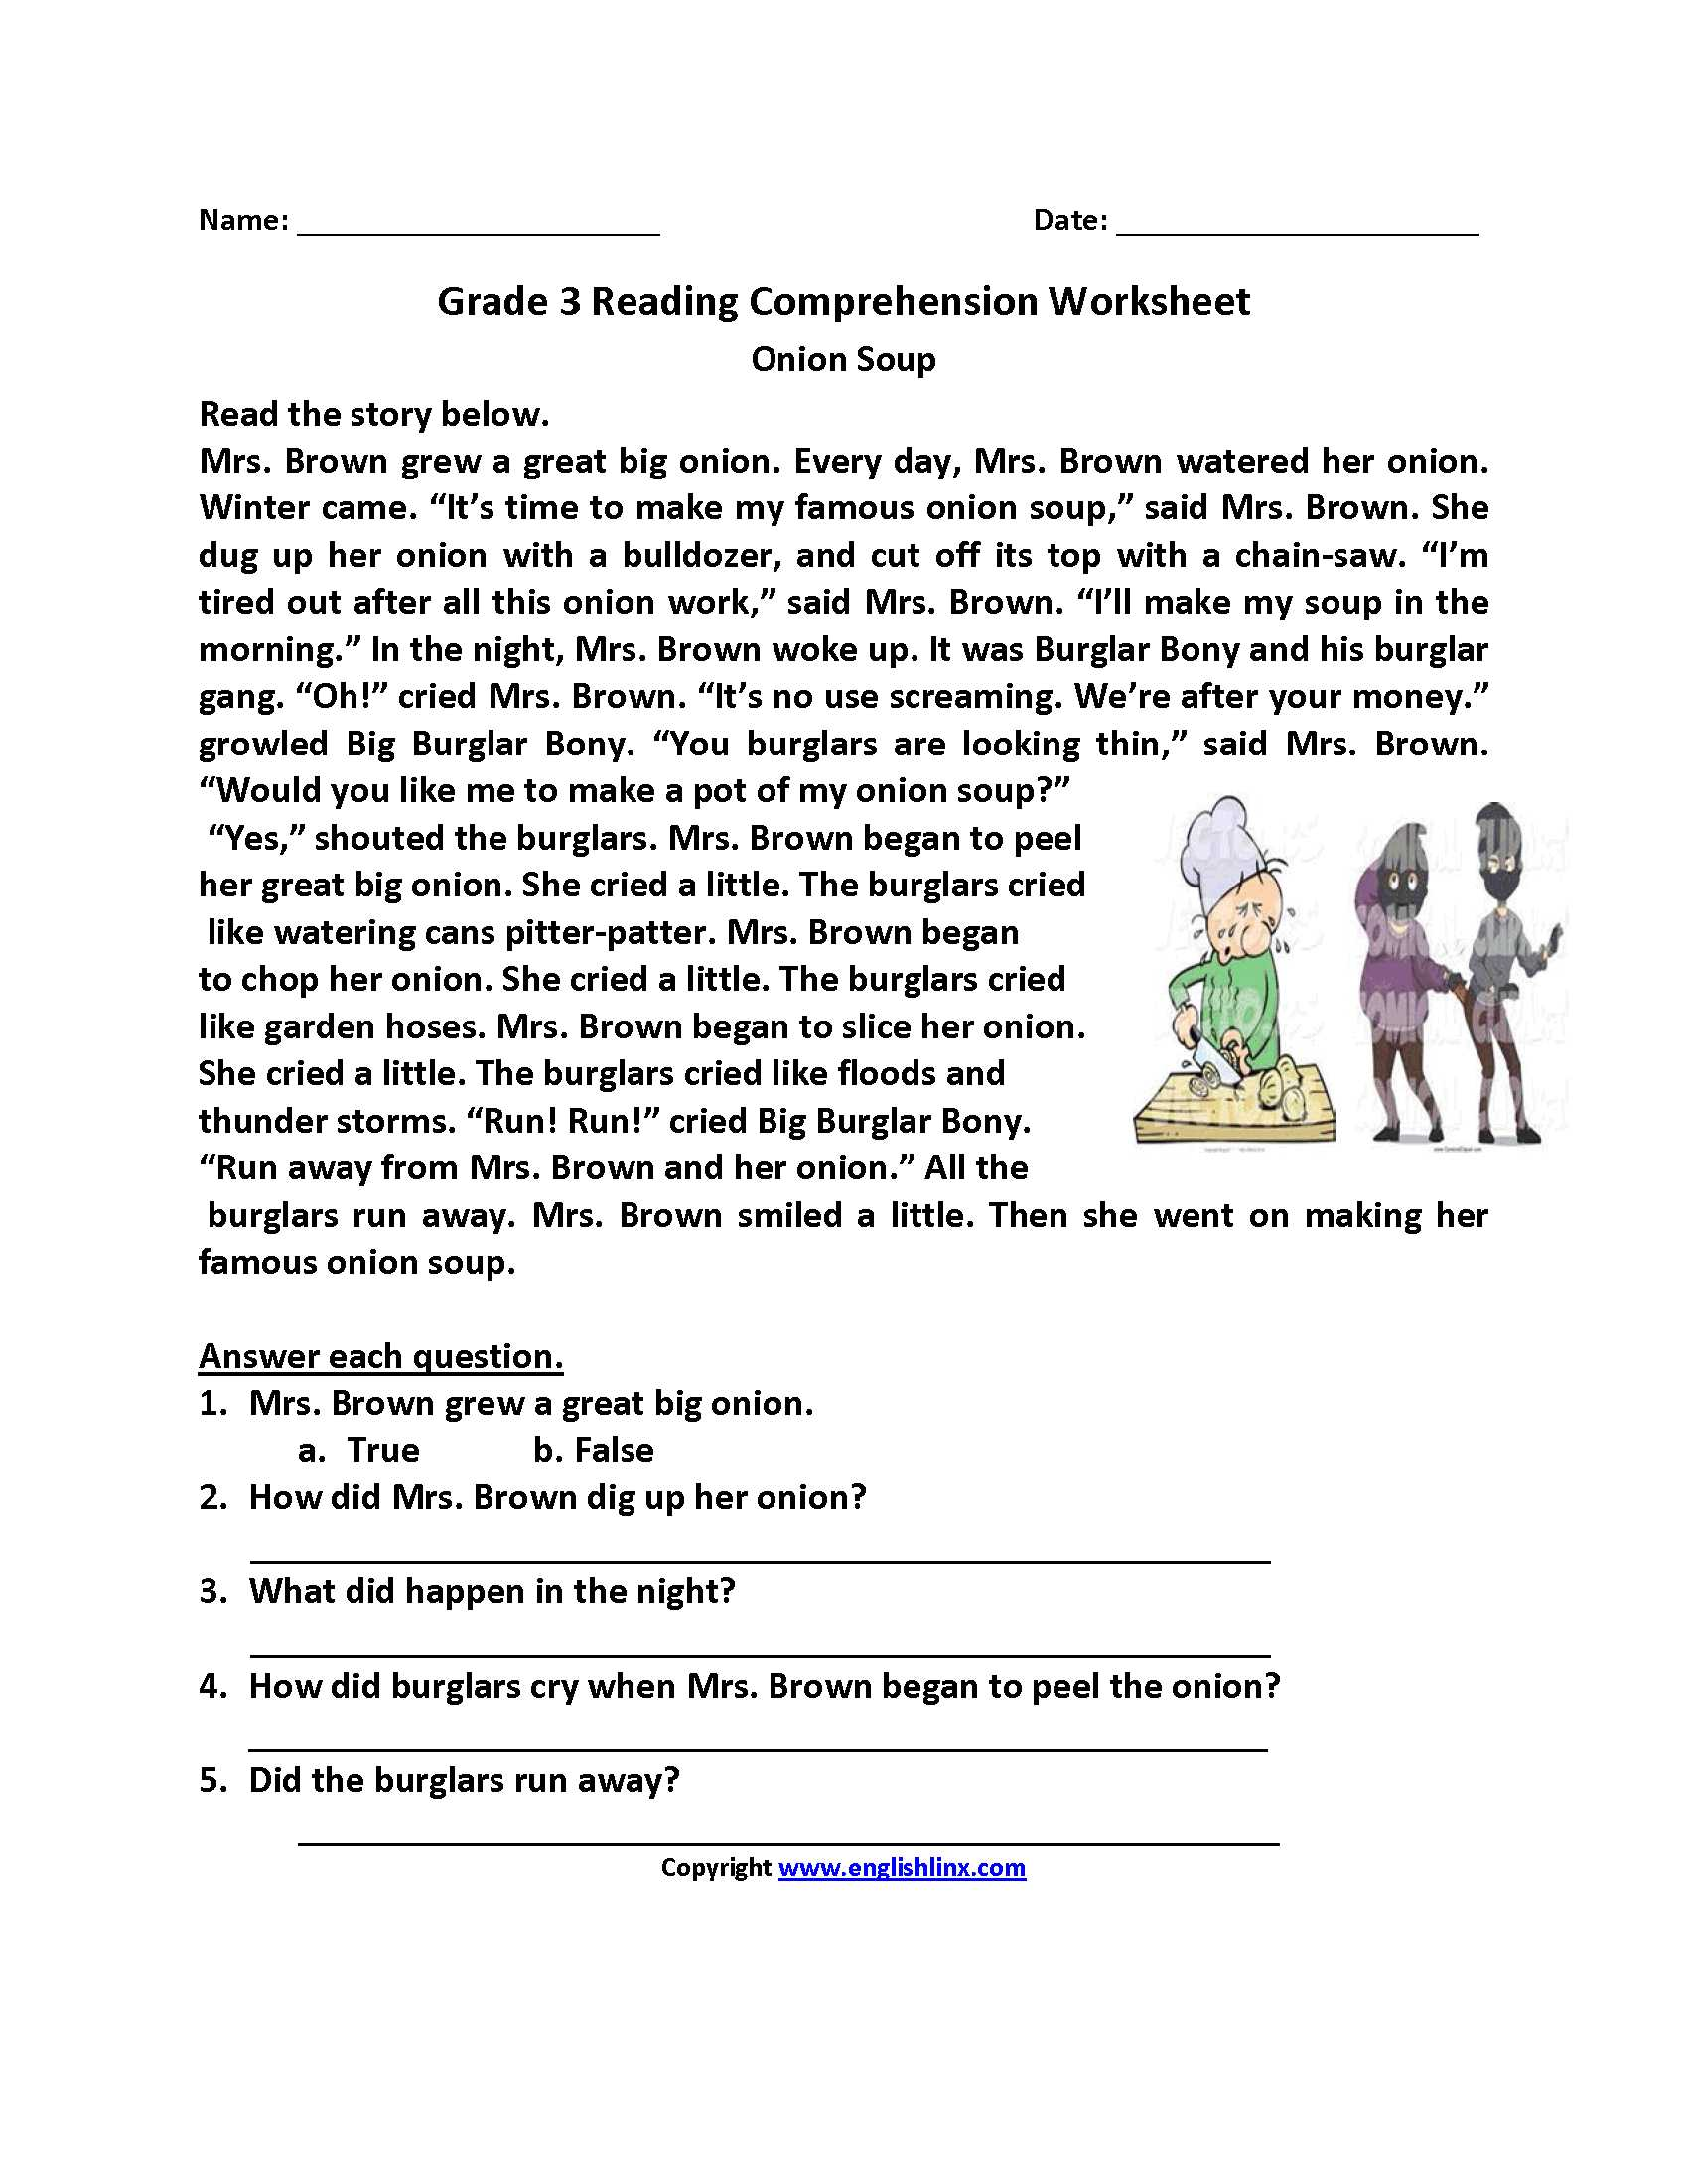 Drawing Conclusions Worksheets 3rd Grade together with Third Grade Reading Worksheets the Best Worksheets Image Collection